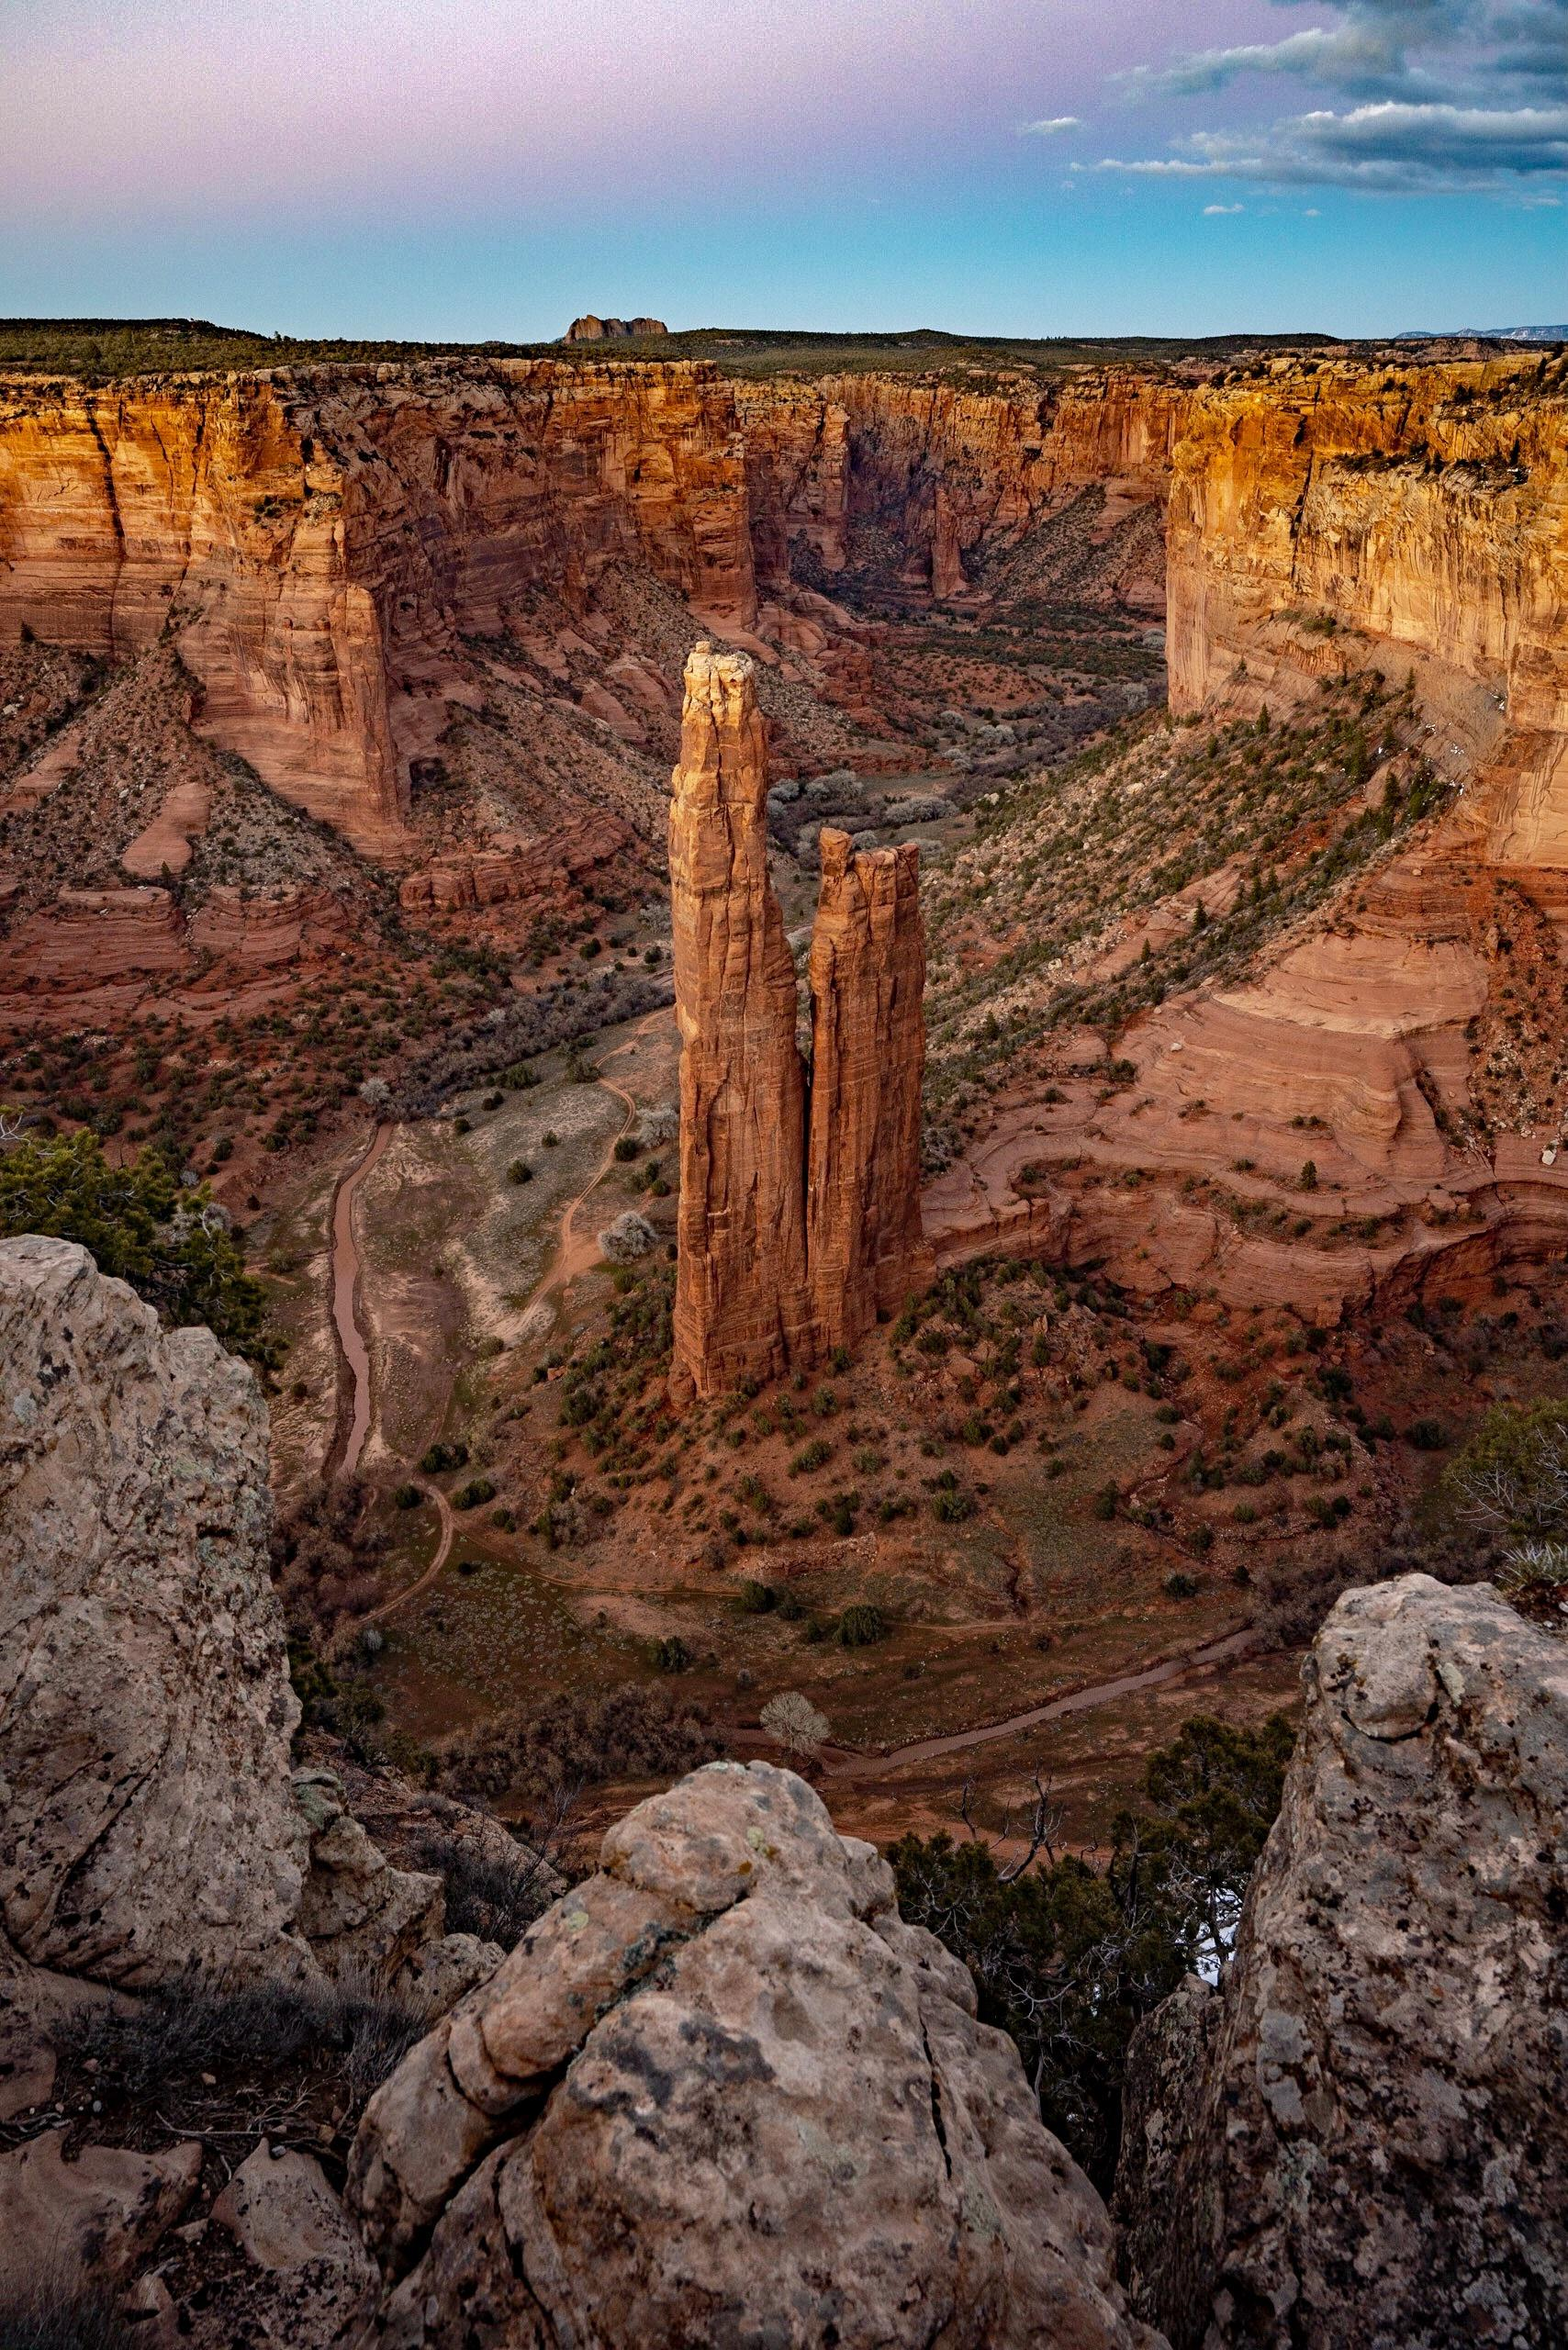 A little bit after sunset at Canyon de Chelly National Monument